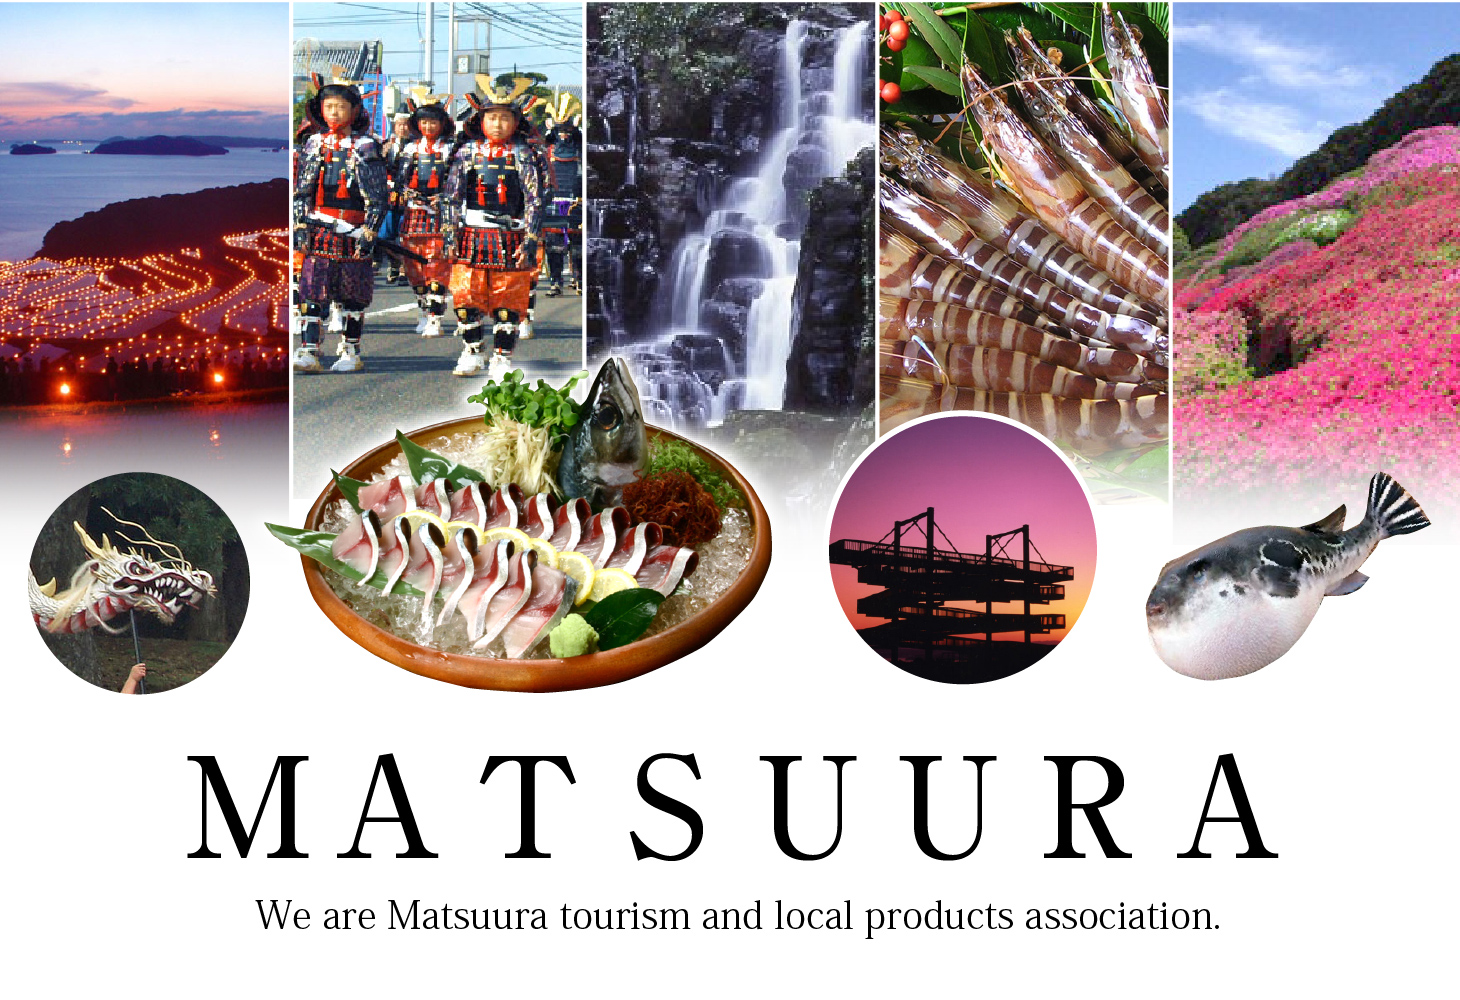 We are Matsuura tourism and local products association.